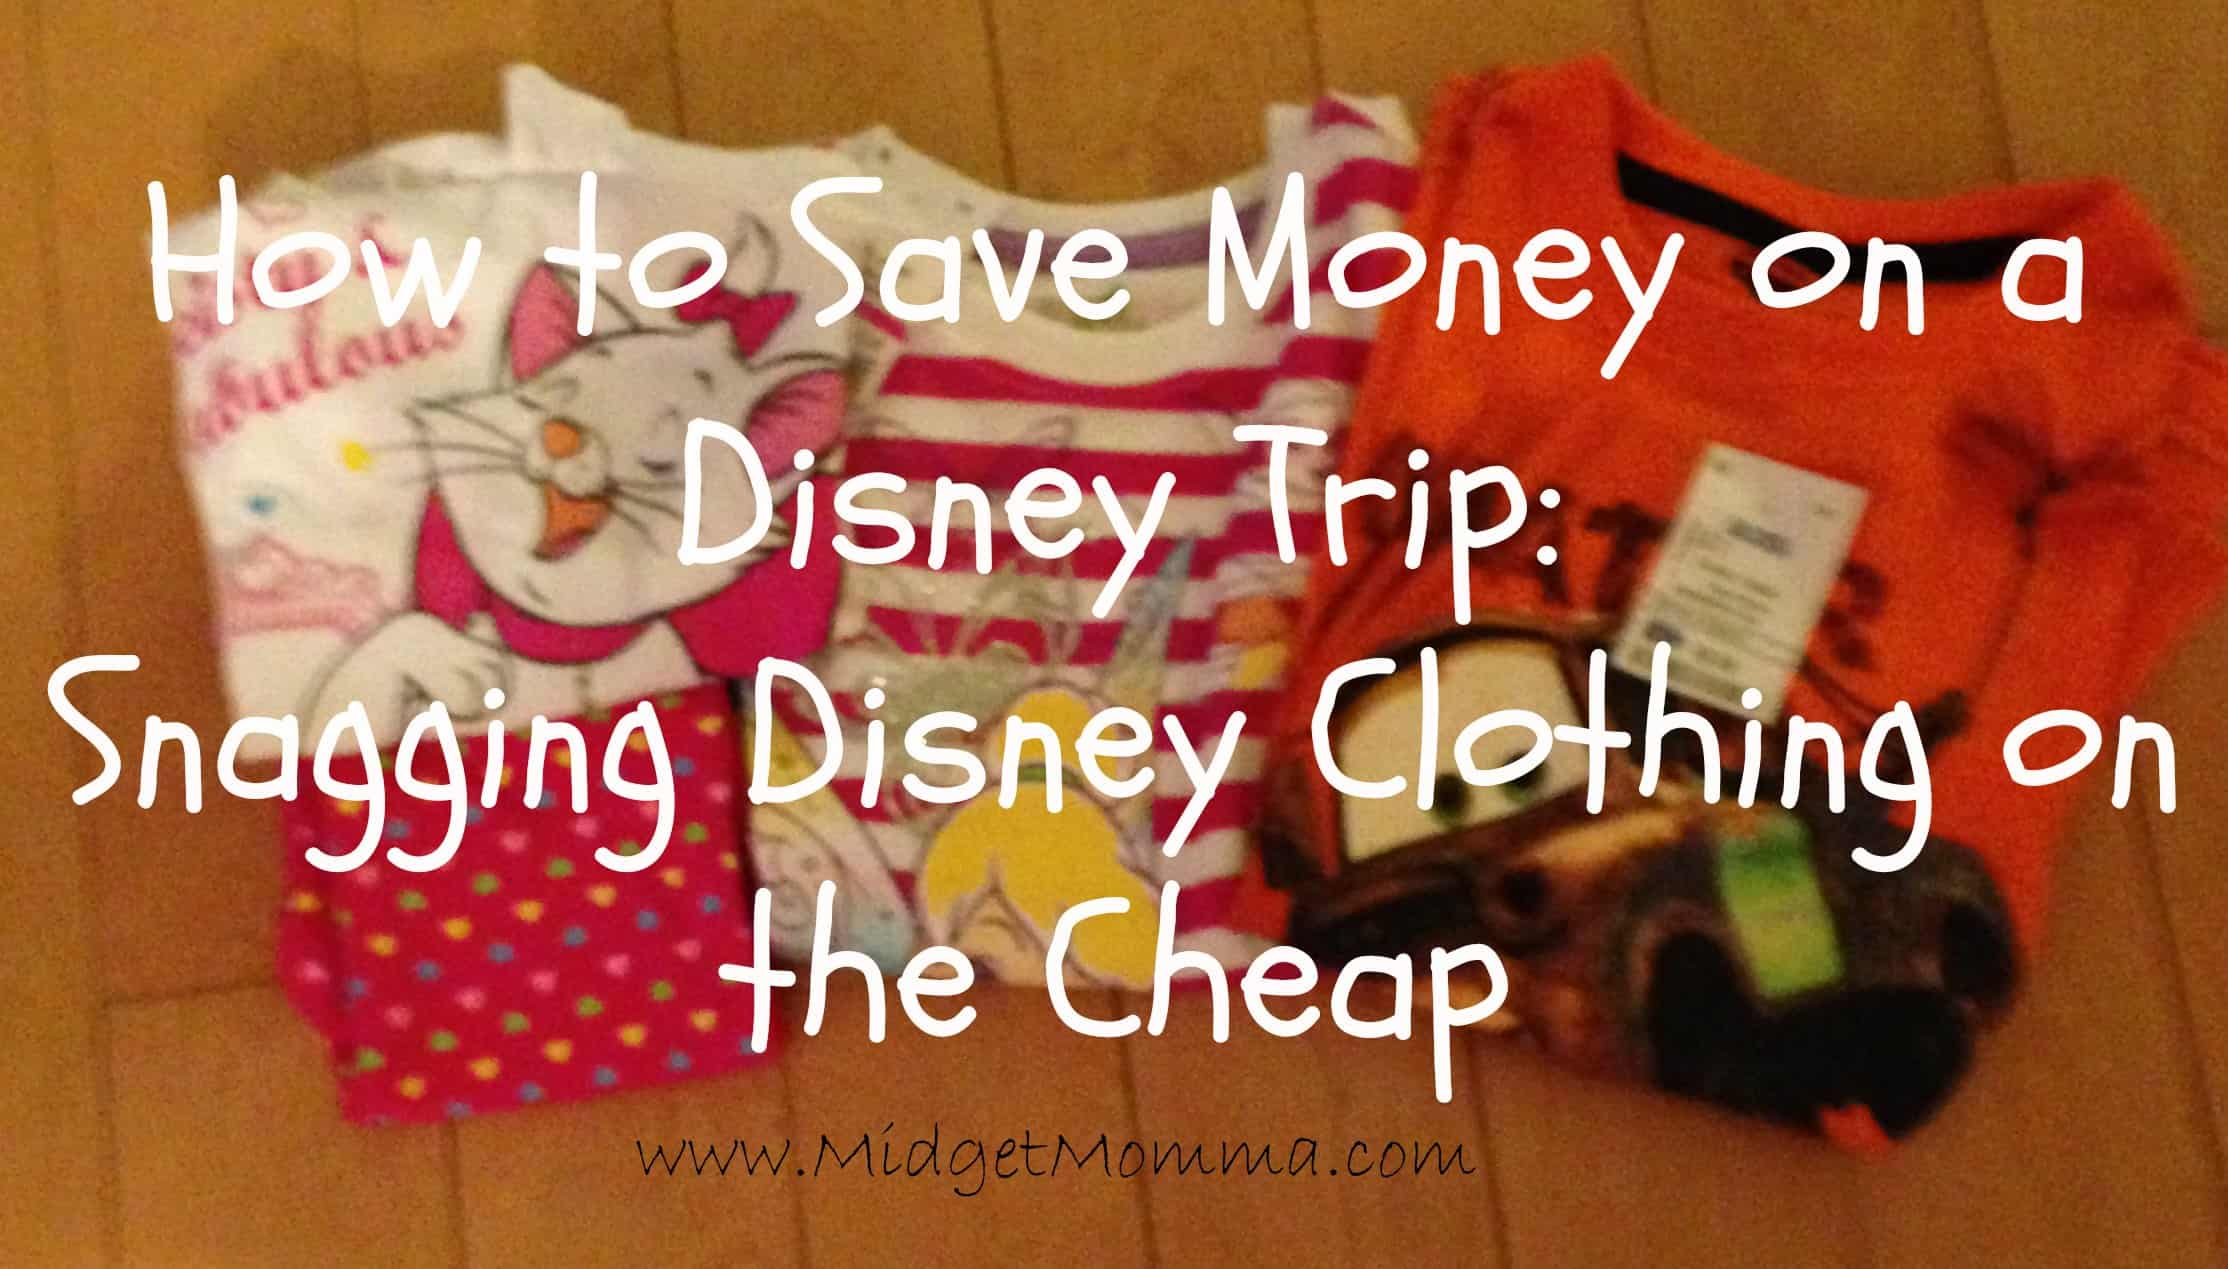 How to Save Money on a Disney Trip: Snagging Disney Clothing on the Cheap